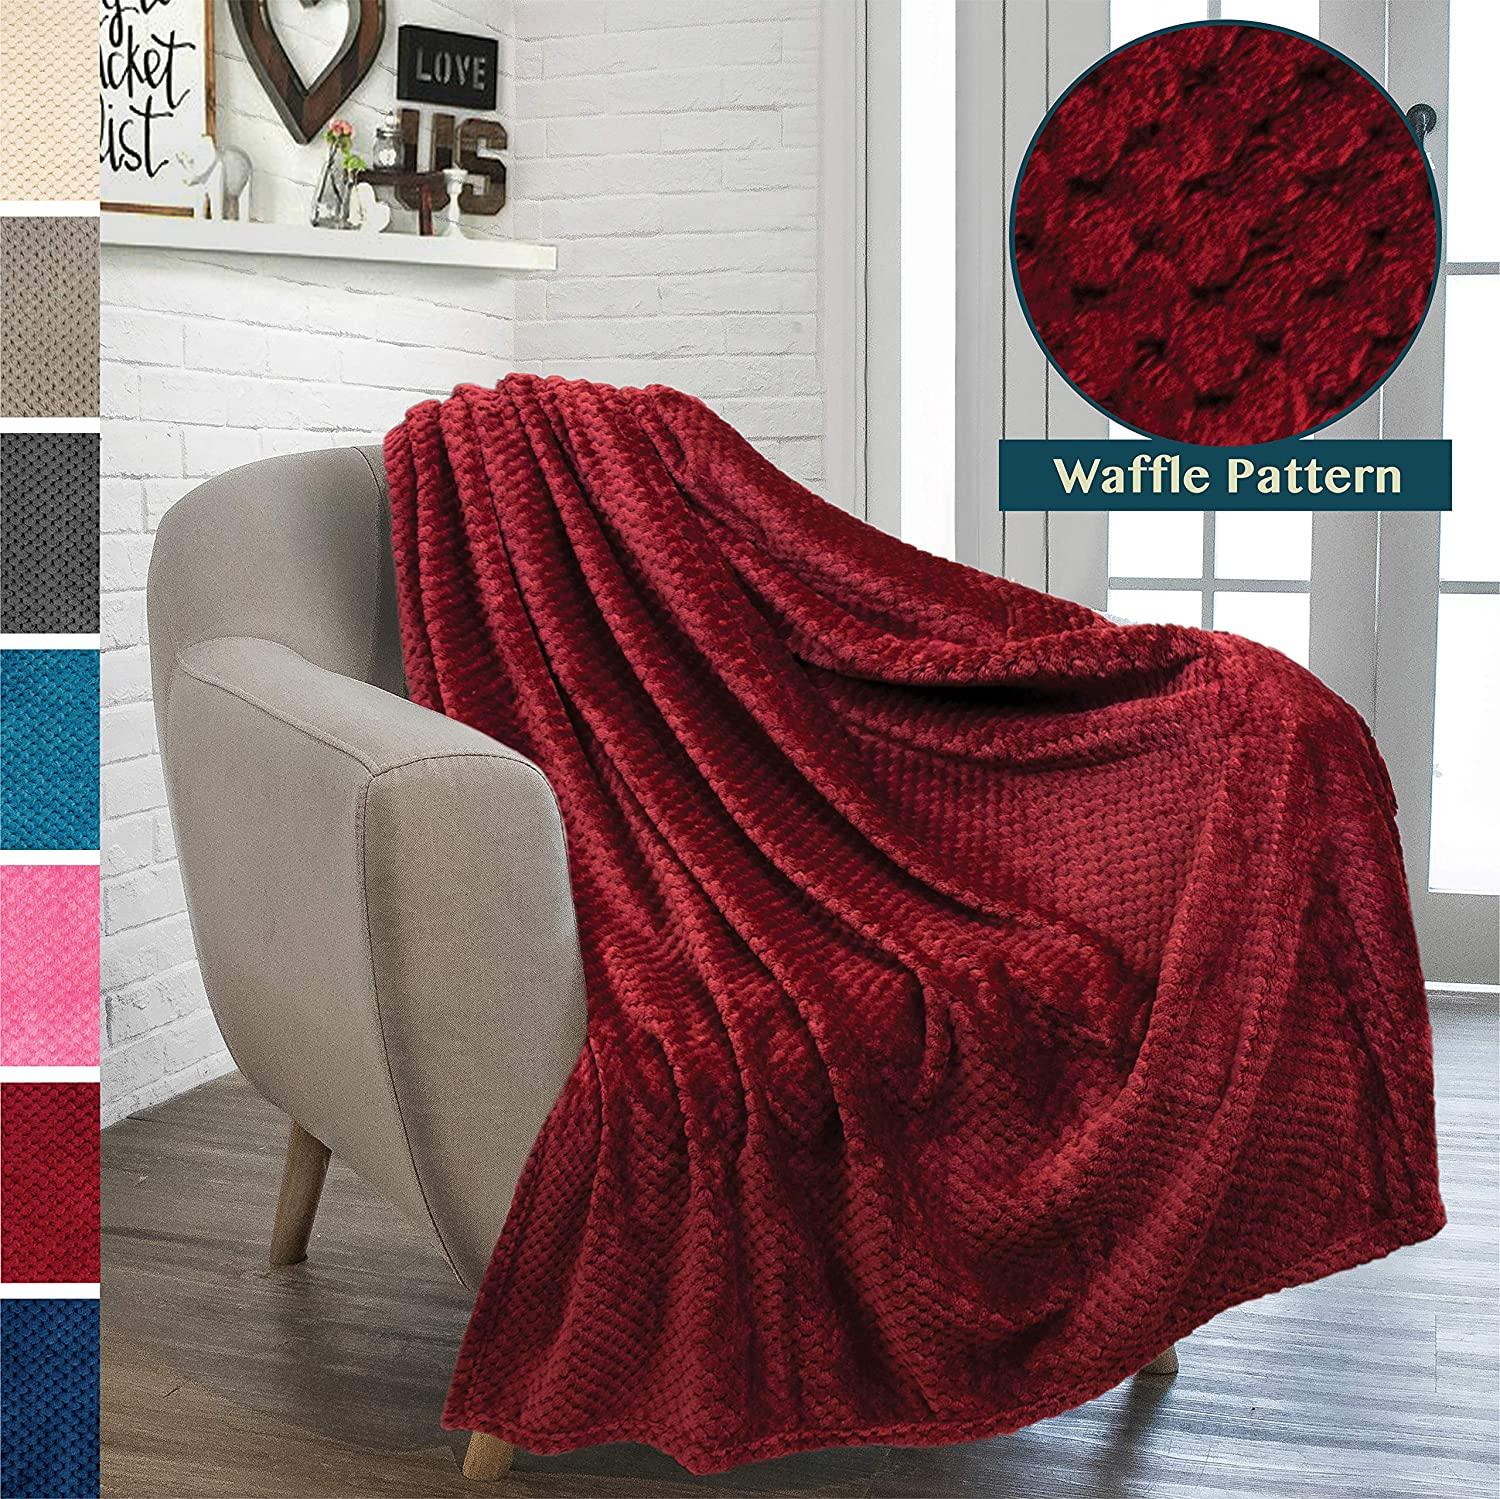 PAVILIA Premium Flannel Fleece Throw Blanket for Sofa Couch | Wine Maroon Waffle Textured Soft Fuzzy Throw | Warm Cozy Microfiber | Lightweight, All Season Use | 50 x 60 Inches